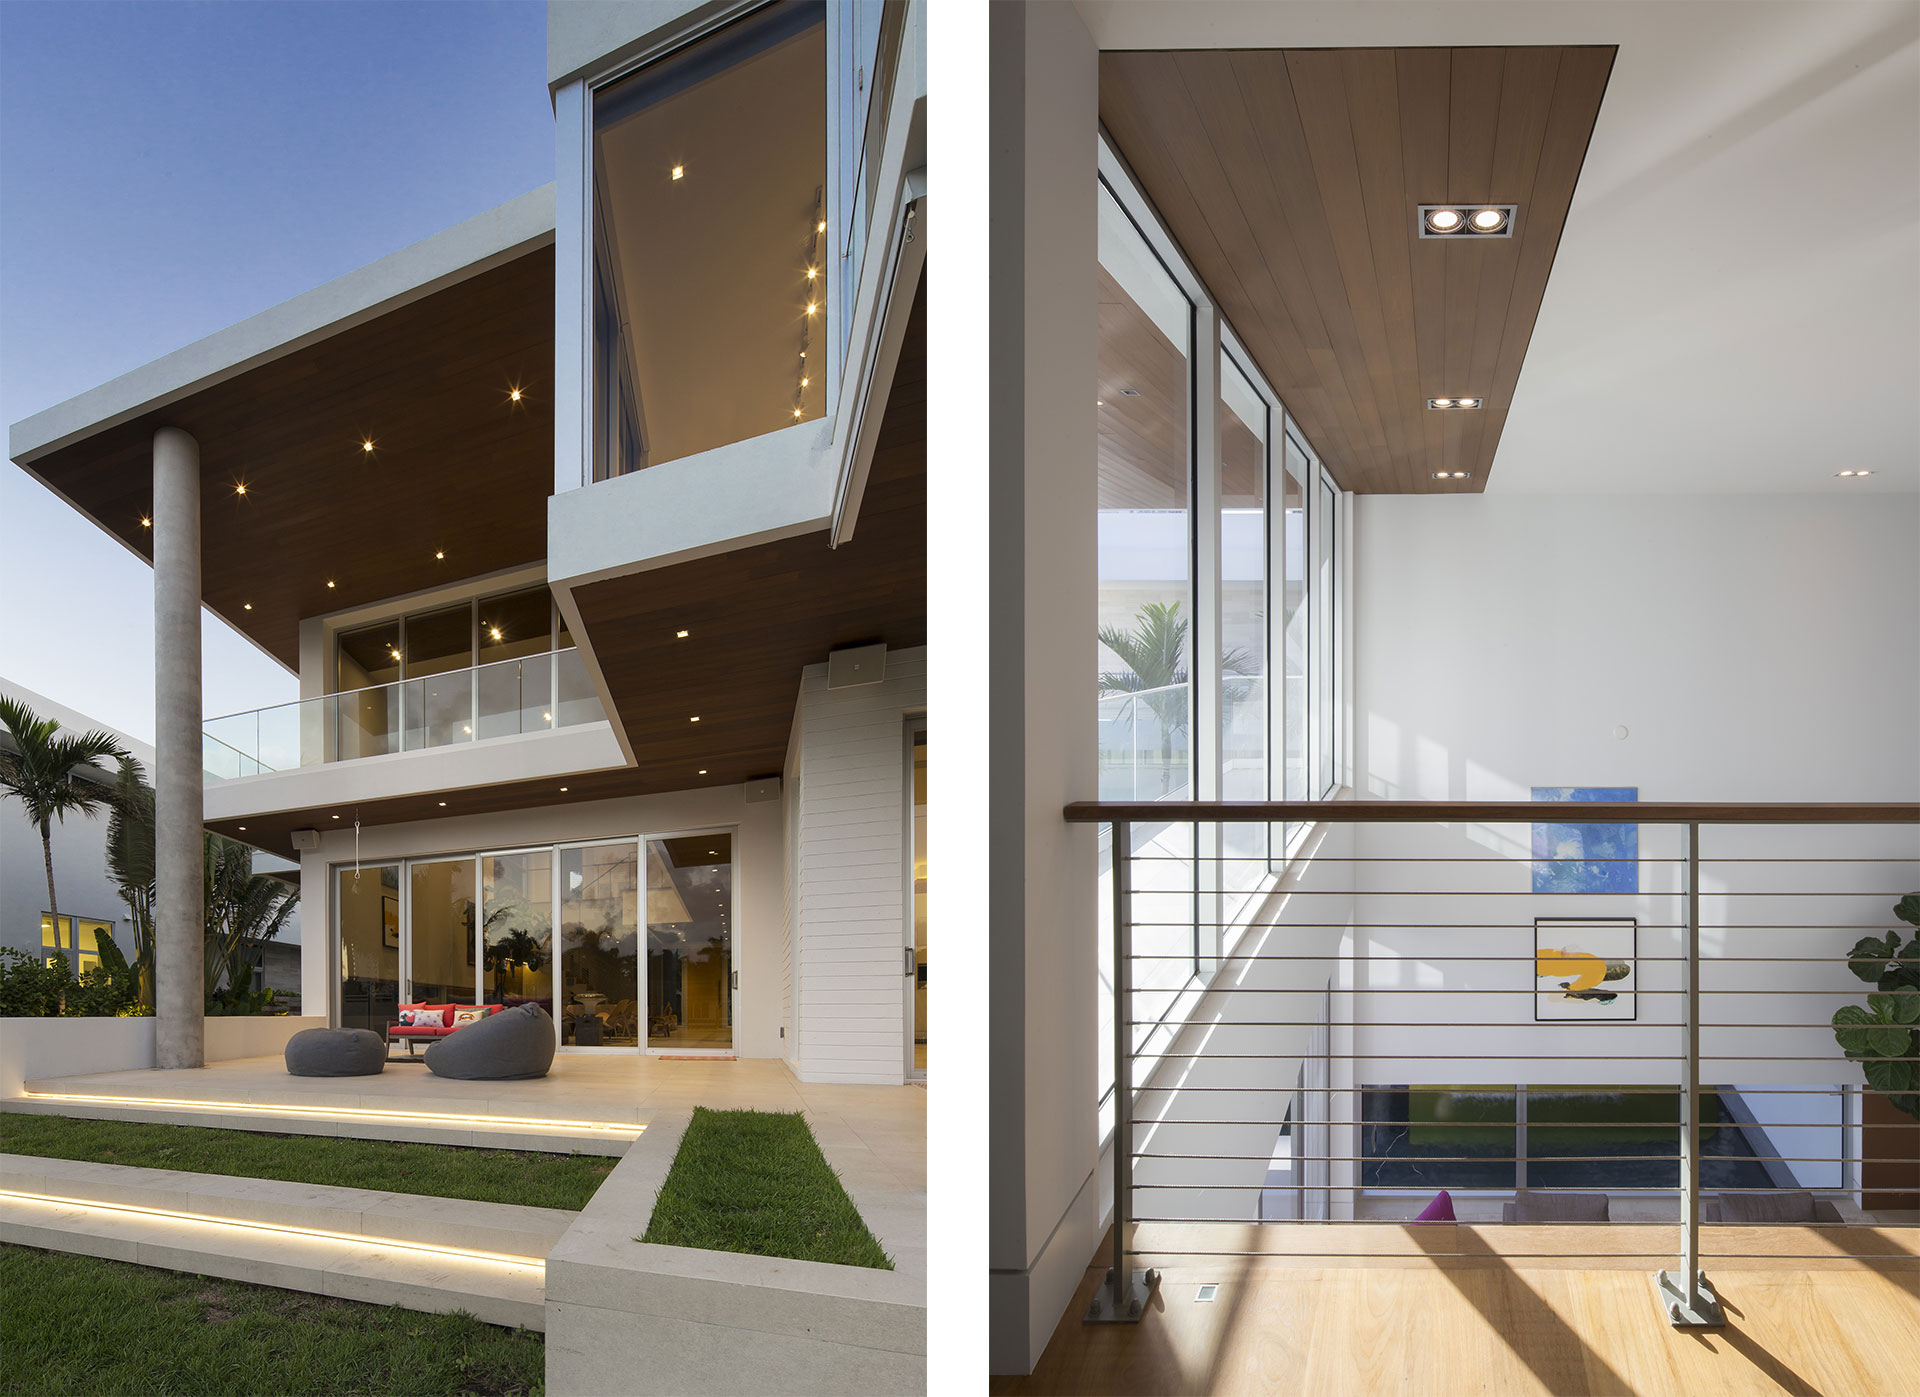 Terrace Side View Exterior Architecture project in 484 North Parkway, Florida